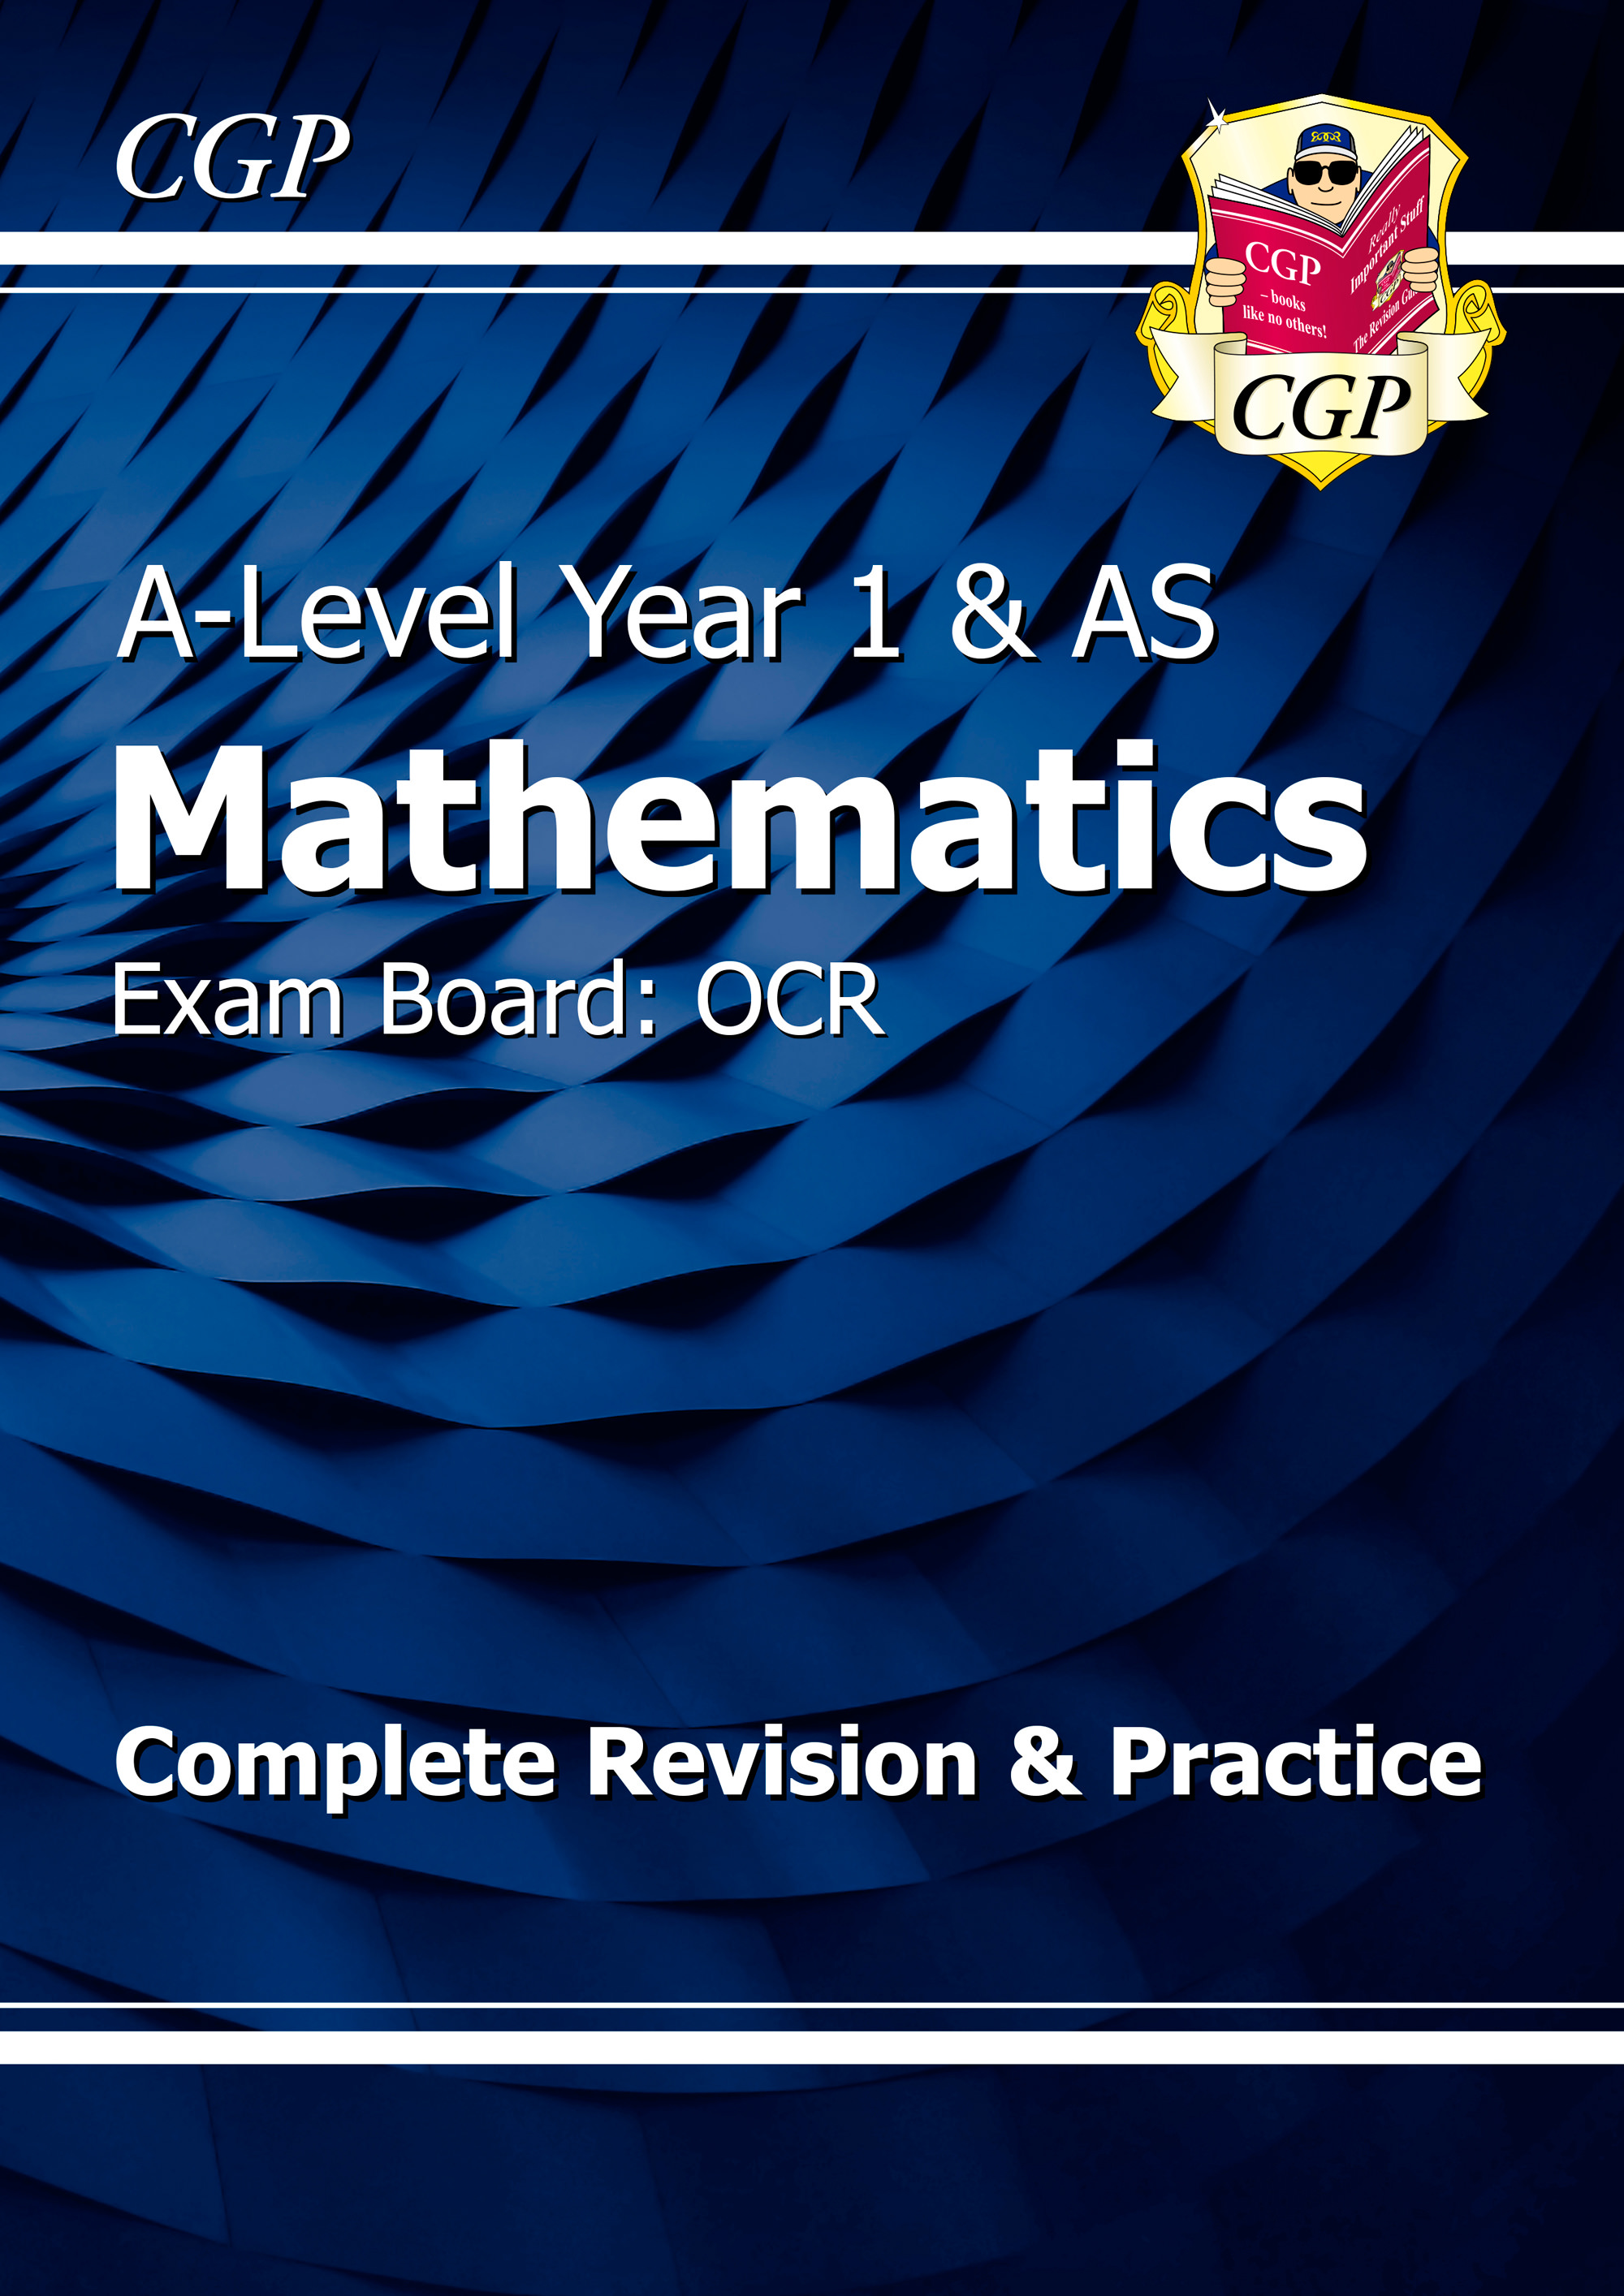 MRAR52DK - New A-Level Maths for OCR: Year 1 & AS Complete Revision & Practice